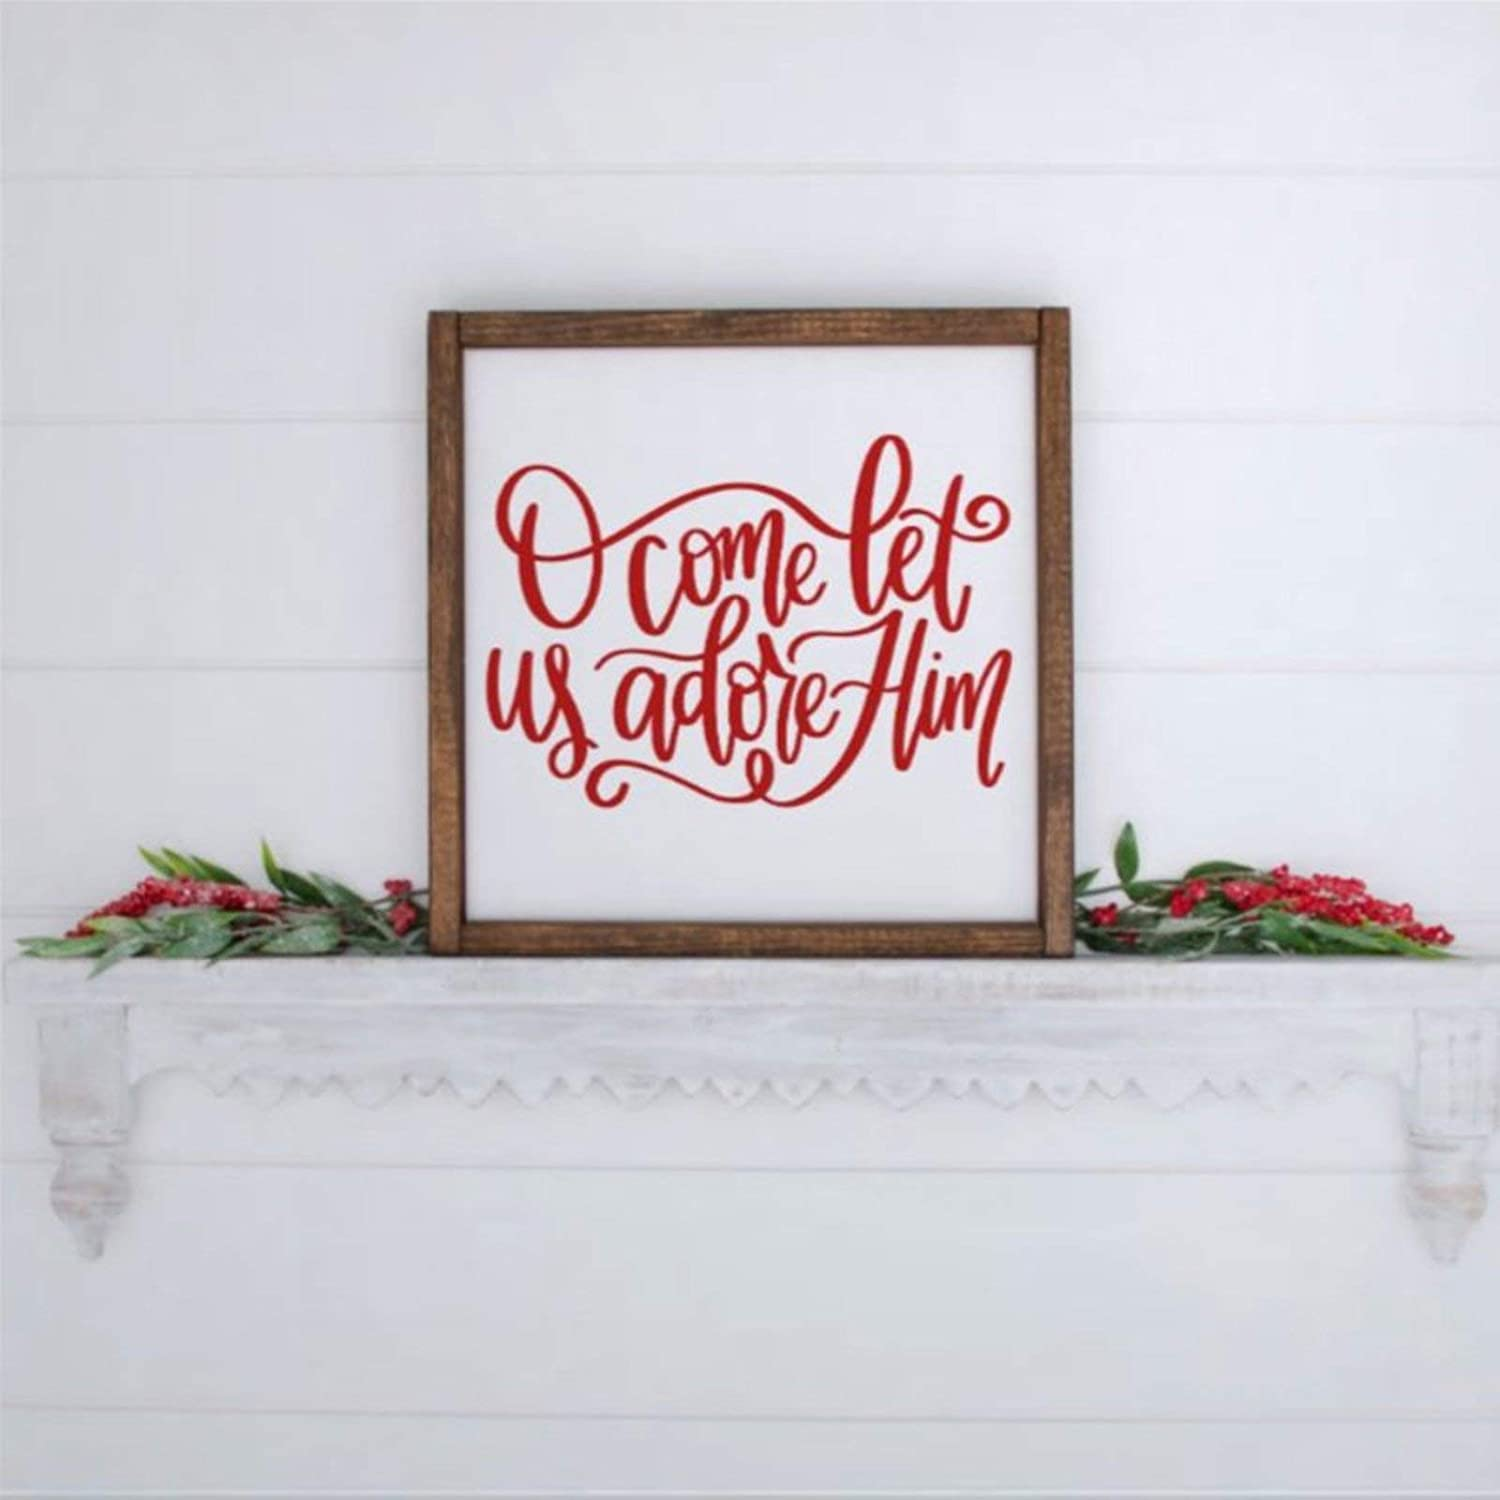 DONL9BAUER O Come Let Us Adore Him Framed Wooden Sign,Farmhouse Christmas Holiday Wood Wall Decor Sign, Wooden Plaque Art for Home,Gardens, Porch, Gallery Wall, Coffee Shops.